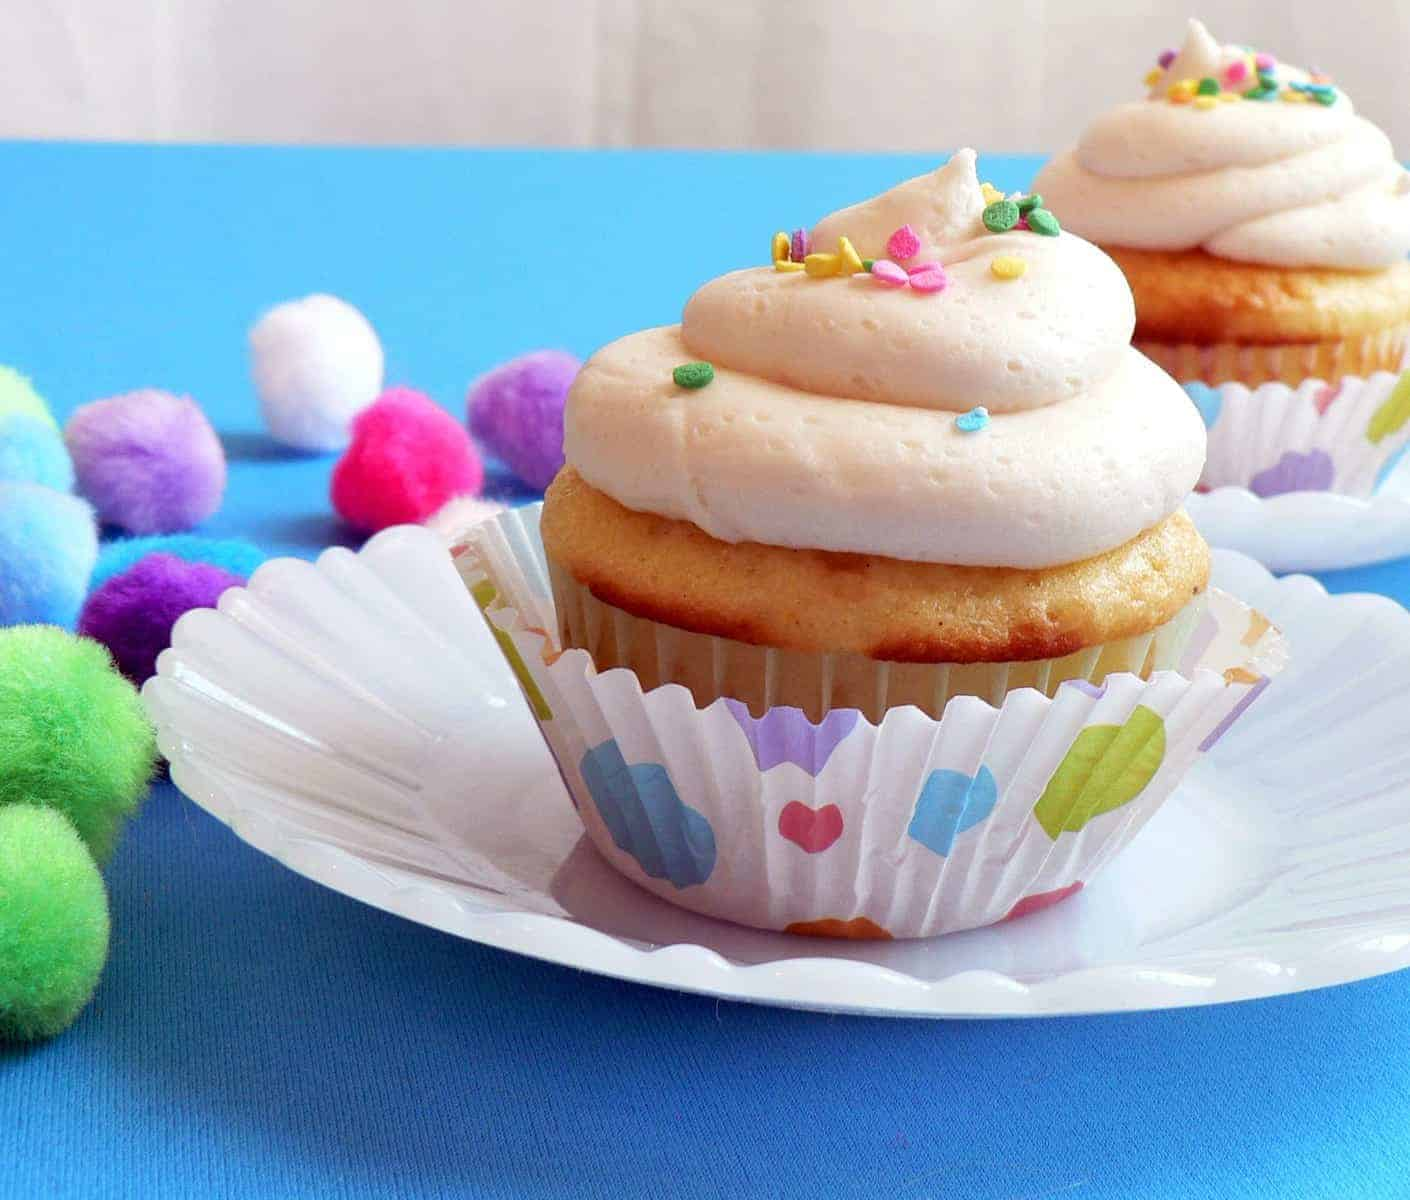 Butter cream Icing for cupcakes